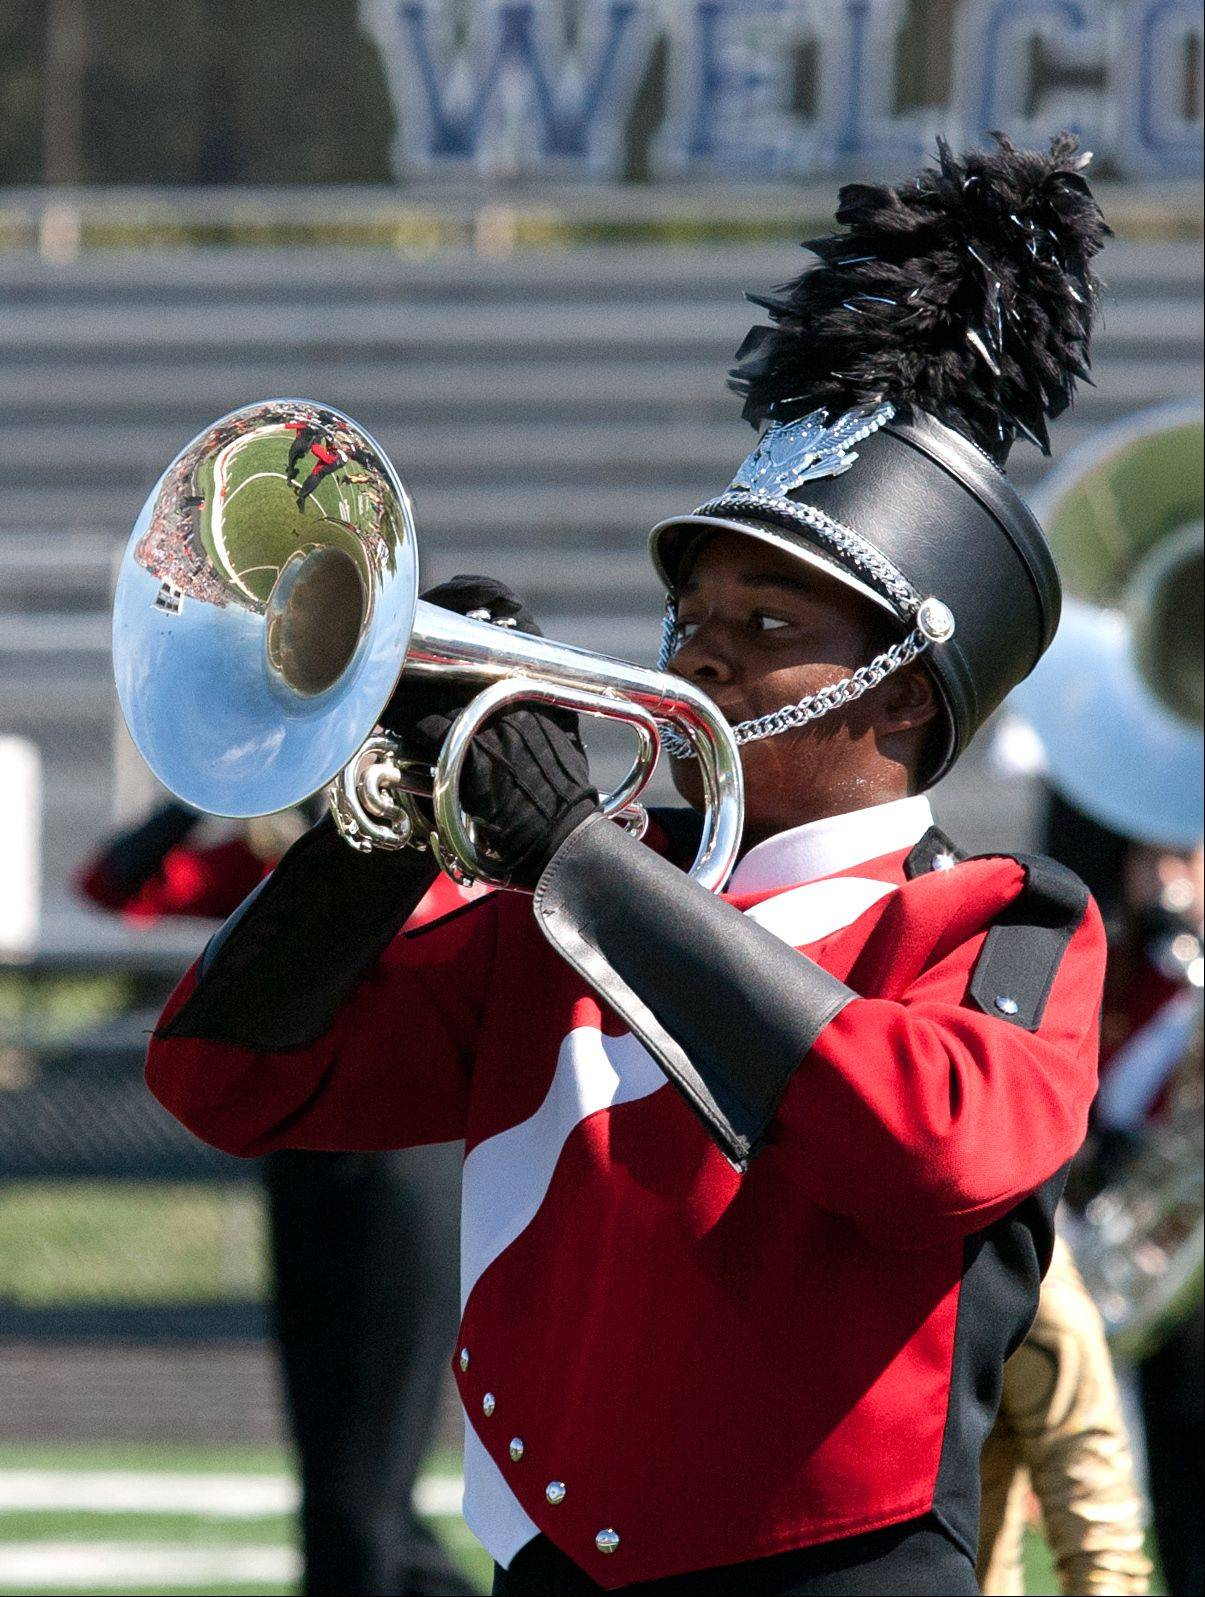 Naperville Central High School Marching Band member Bryson Wilks plays the Mellophone on Saturday during the 35th annual Lancer Joust Marching Band Competition.